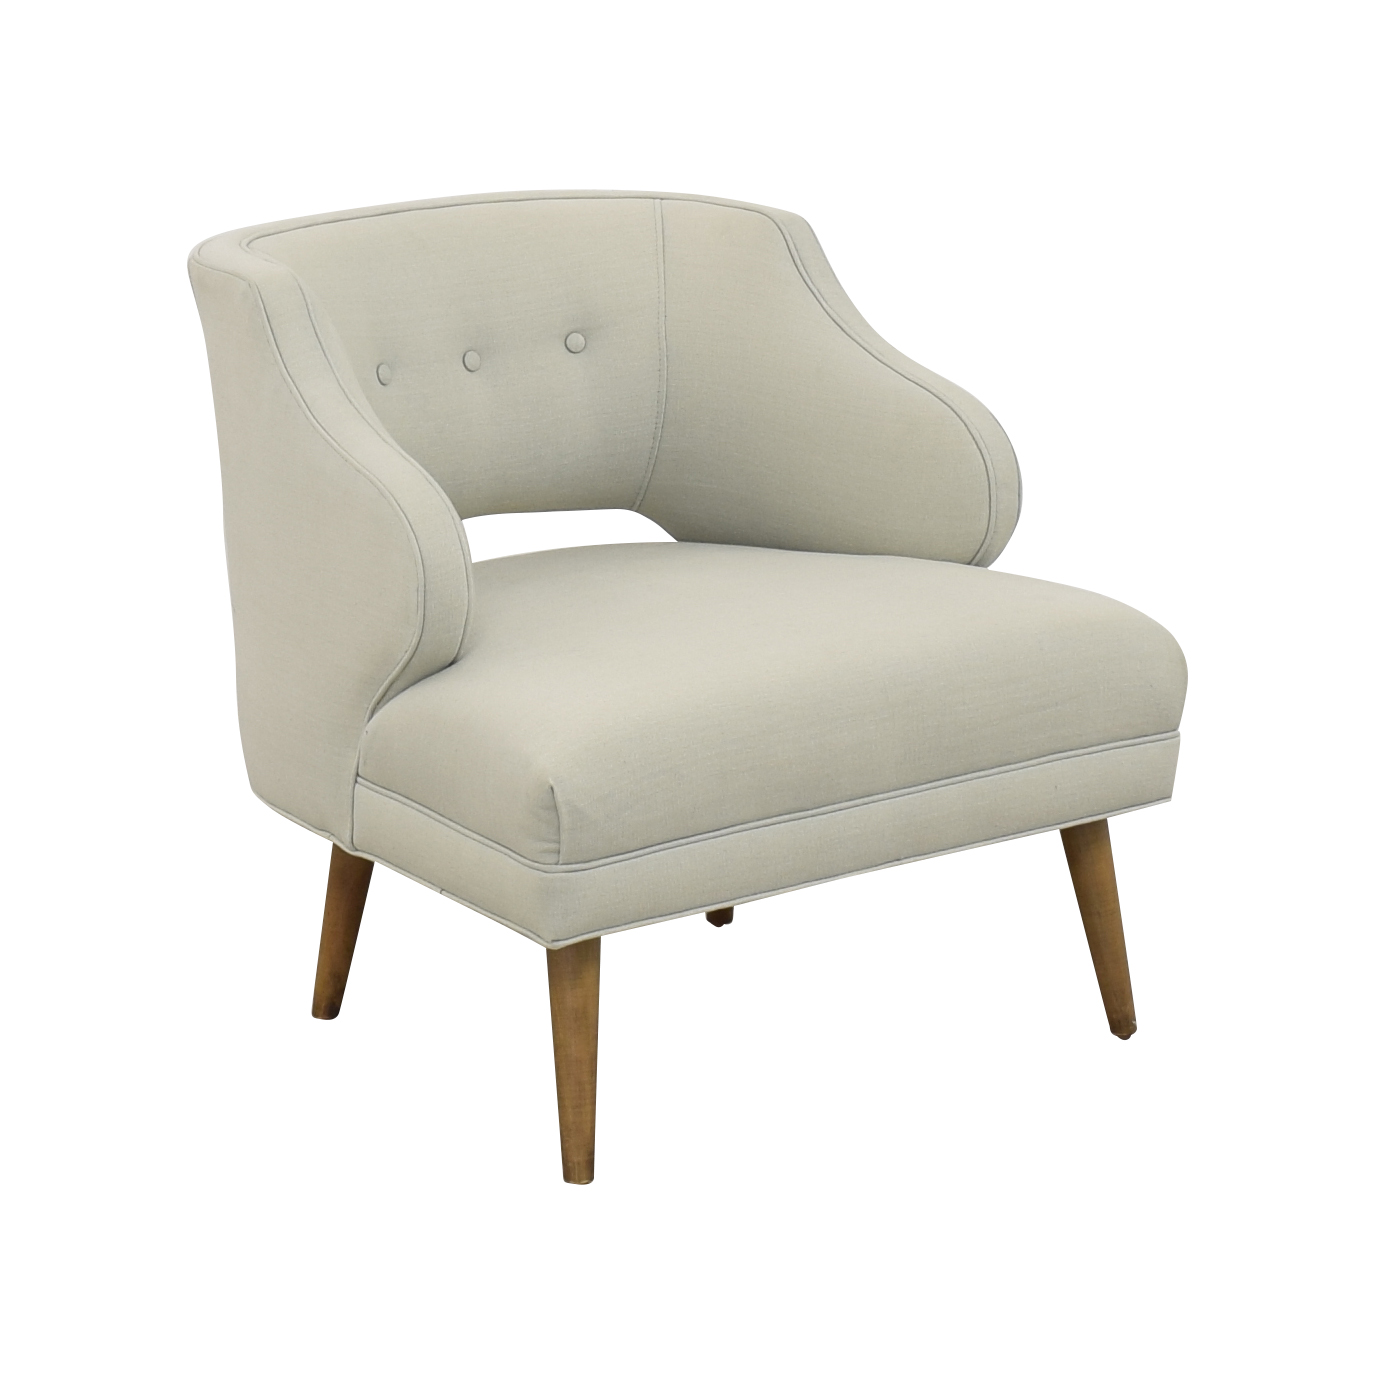 Precedent Furniture Precedent Accent Chair ct